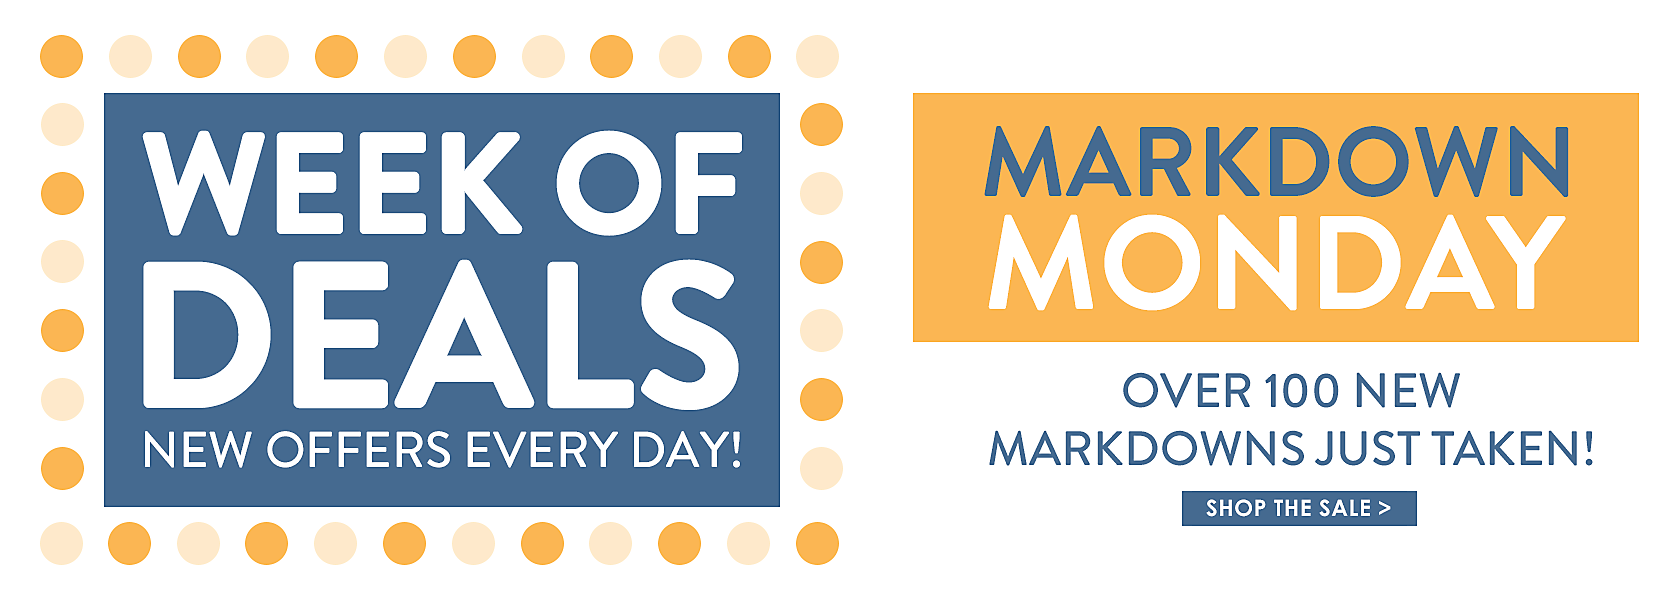 Week of Deals - new offers every day! - Markdown Monday - Over 100 new markdowns just taken - Shop the Sale